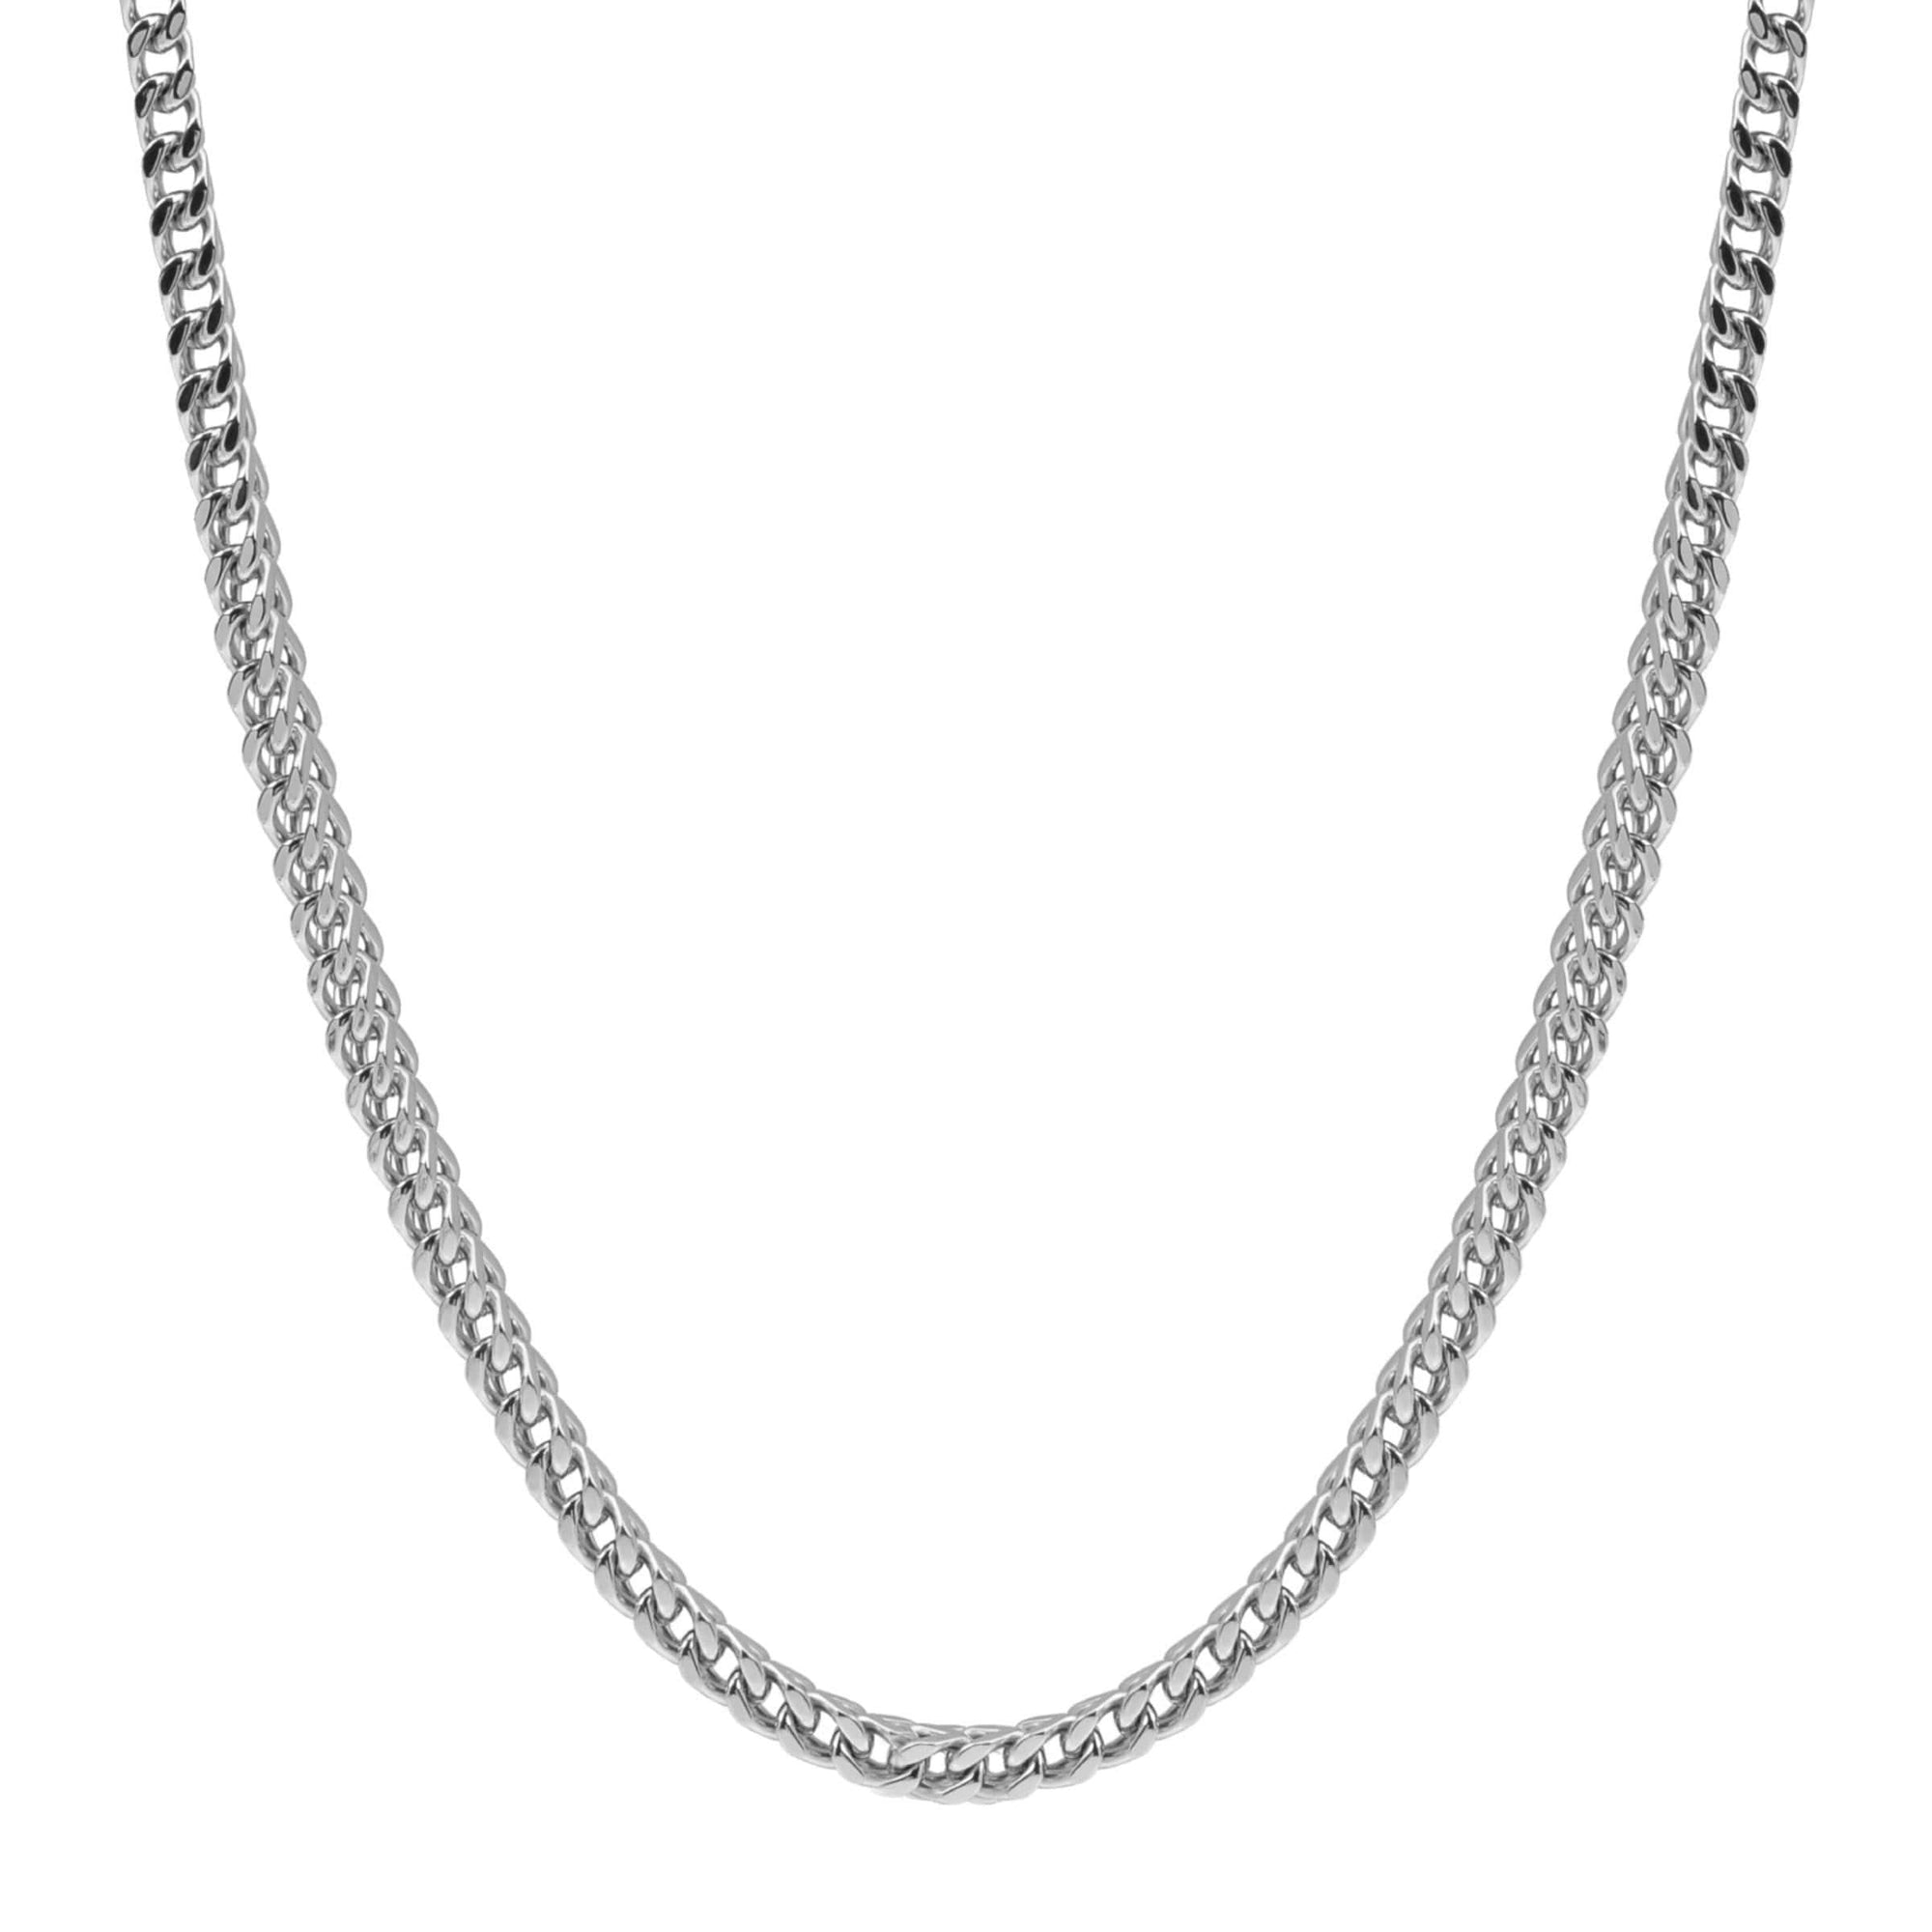 Men's 6mm Stainless Steel Franco Link Chain Necklace at Arman's Jewellers Kitchener